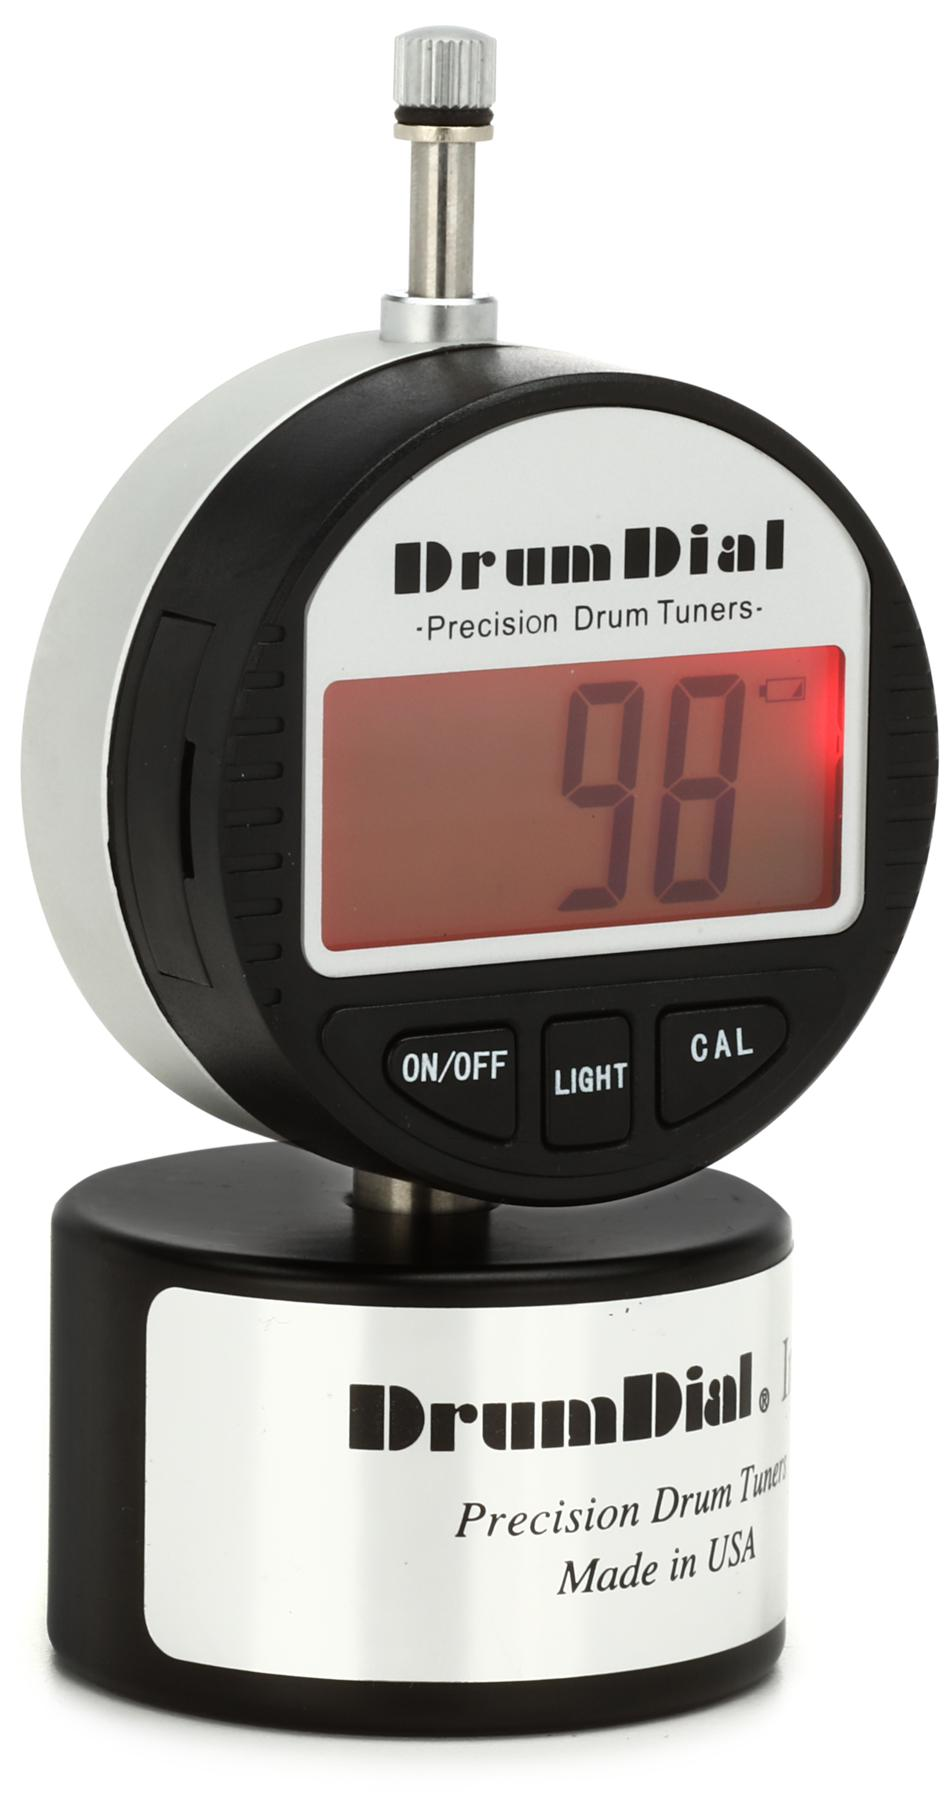 2. DrumDial Digital Drum Tuner